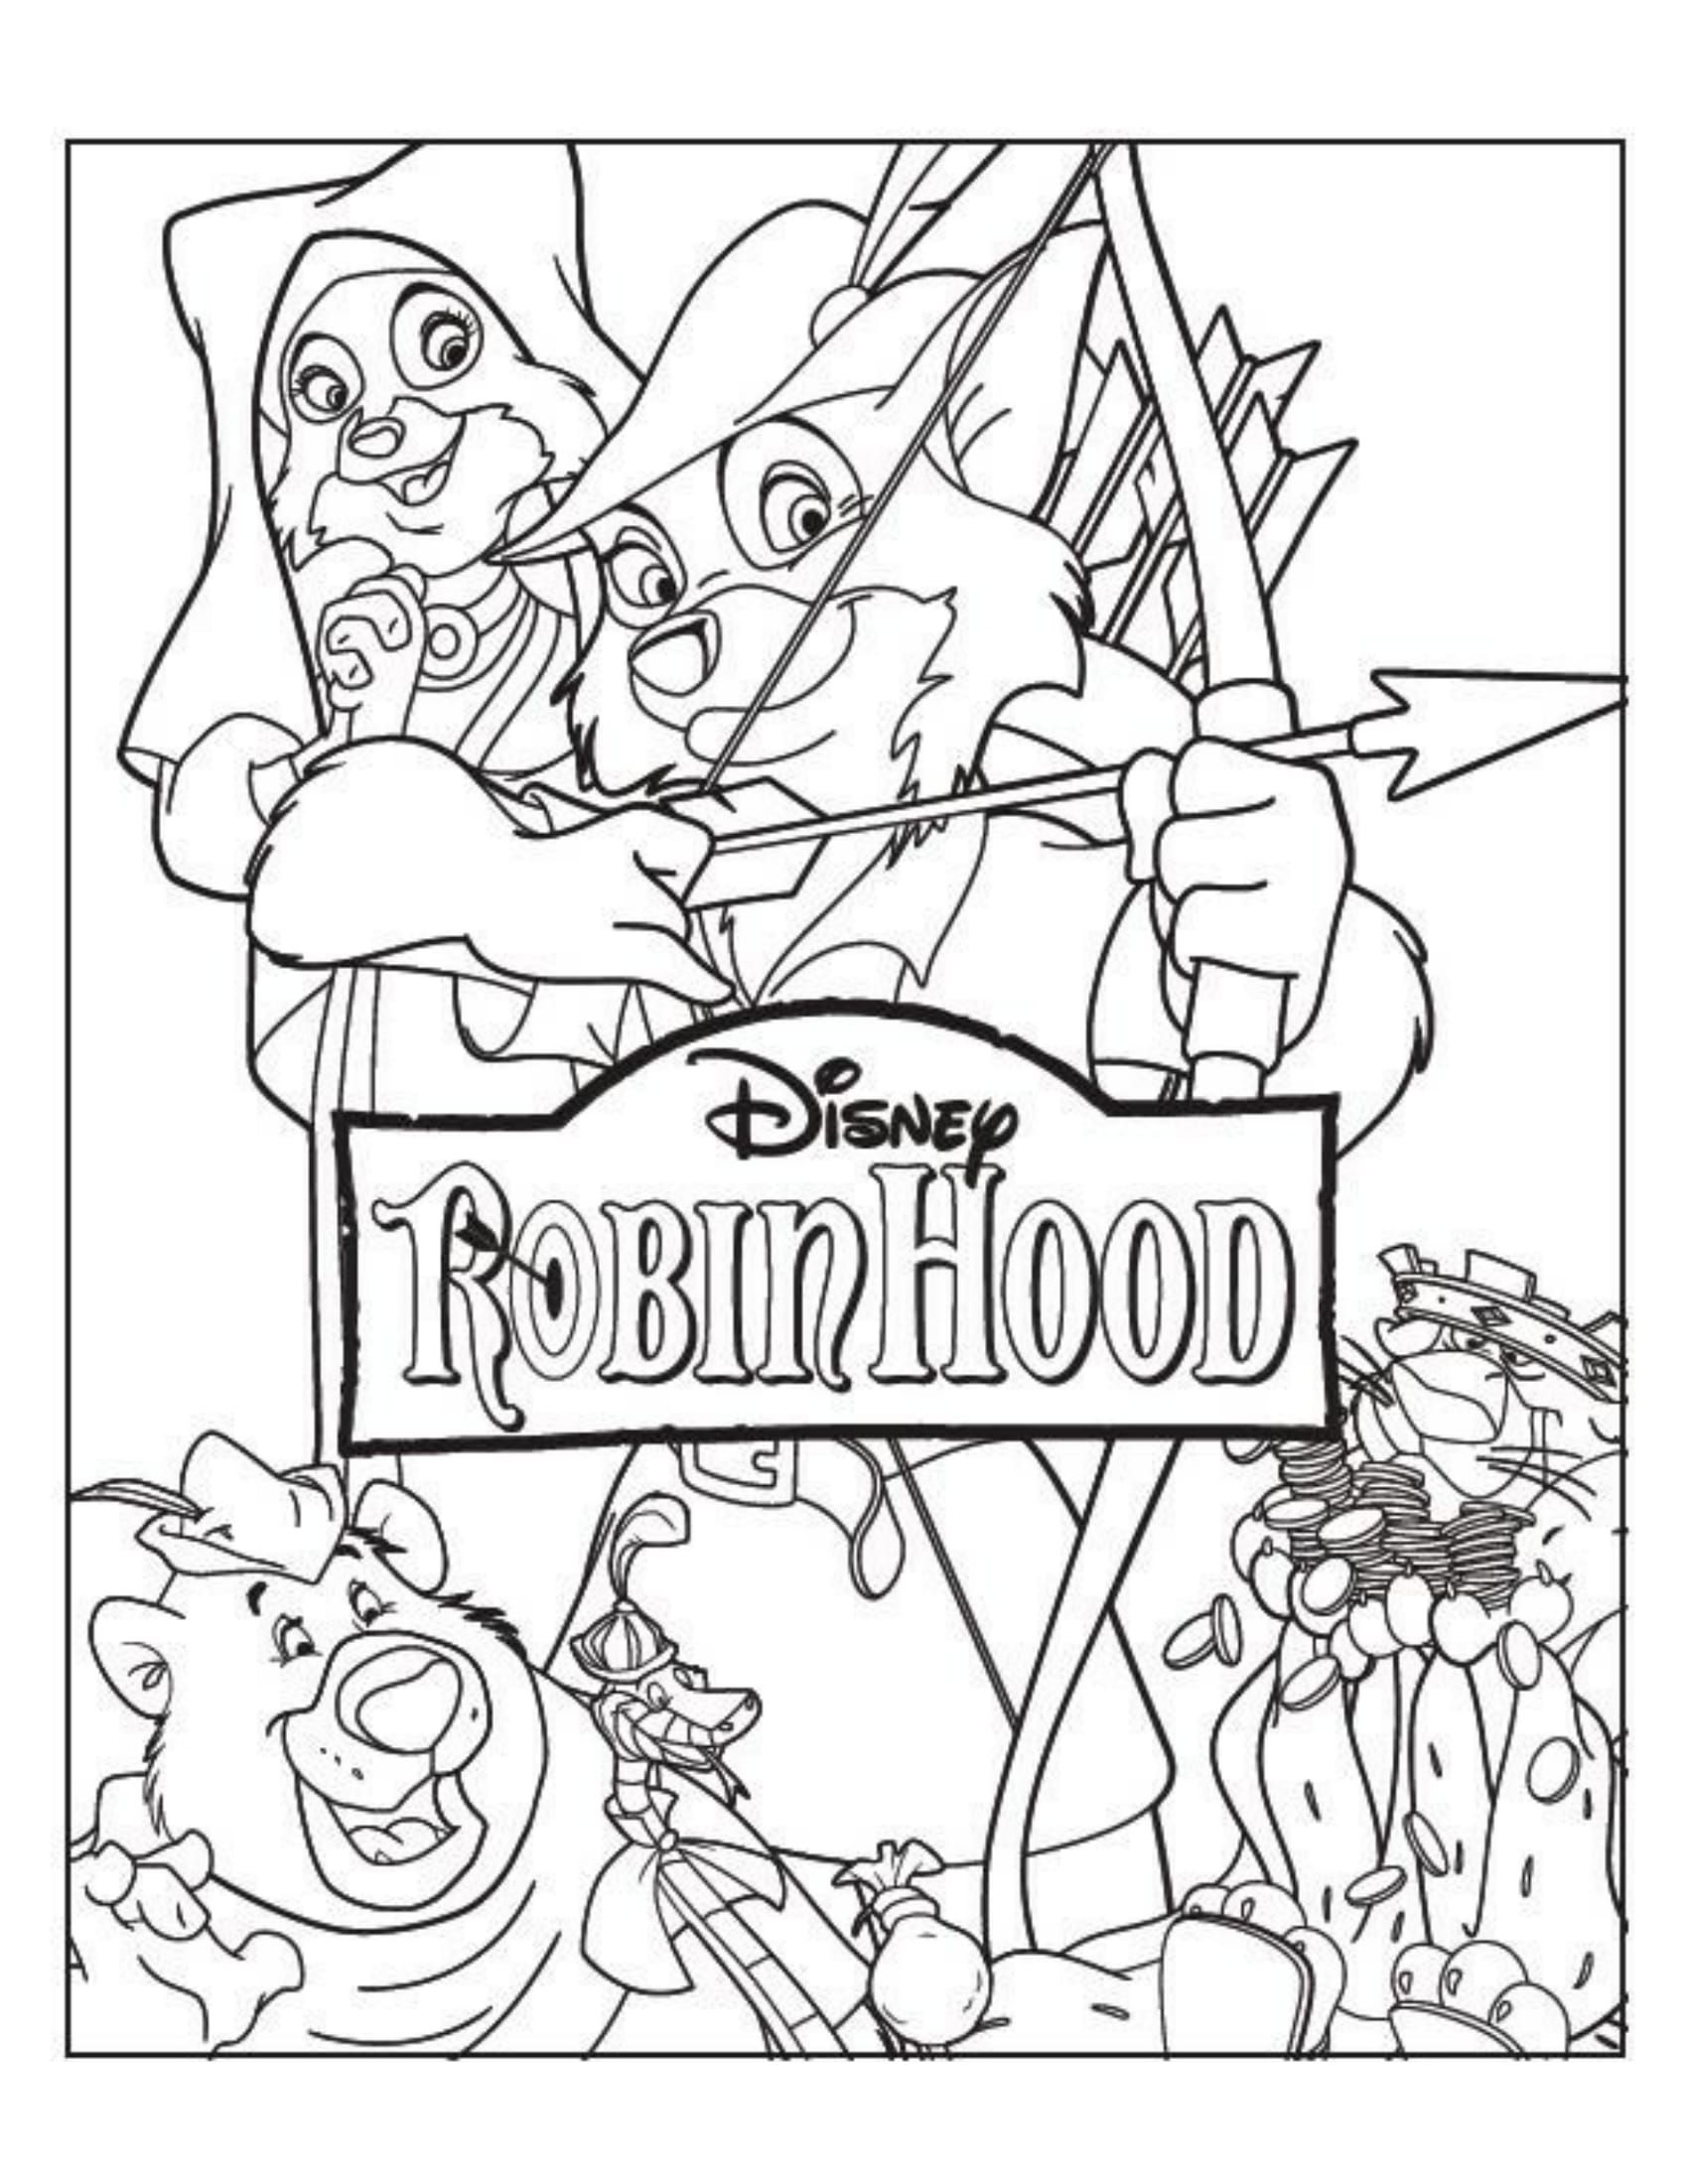 Robin Hood Disney Coloring Pages Coloring Pages Coloring Pages For Boys